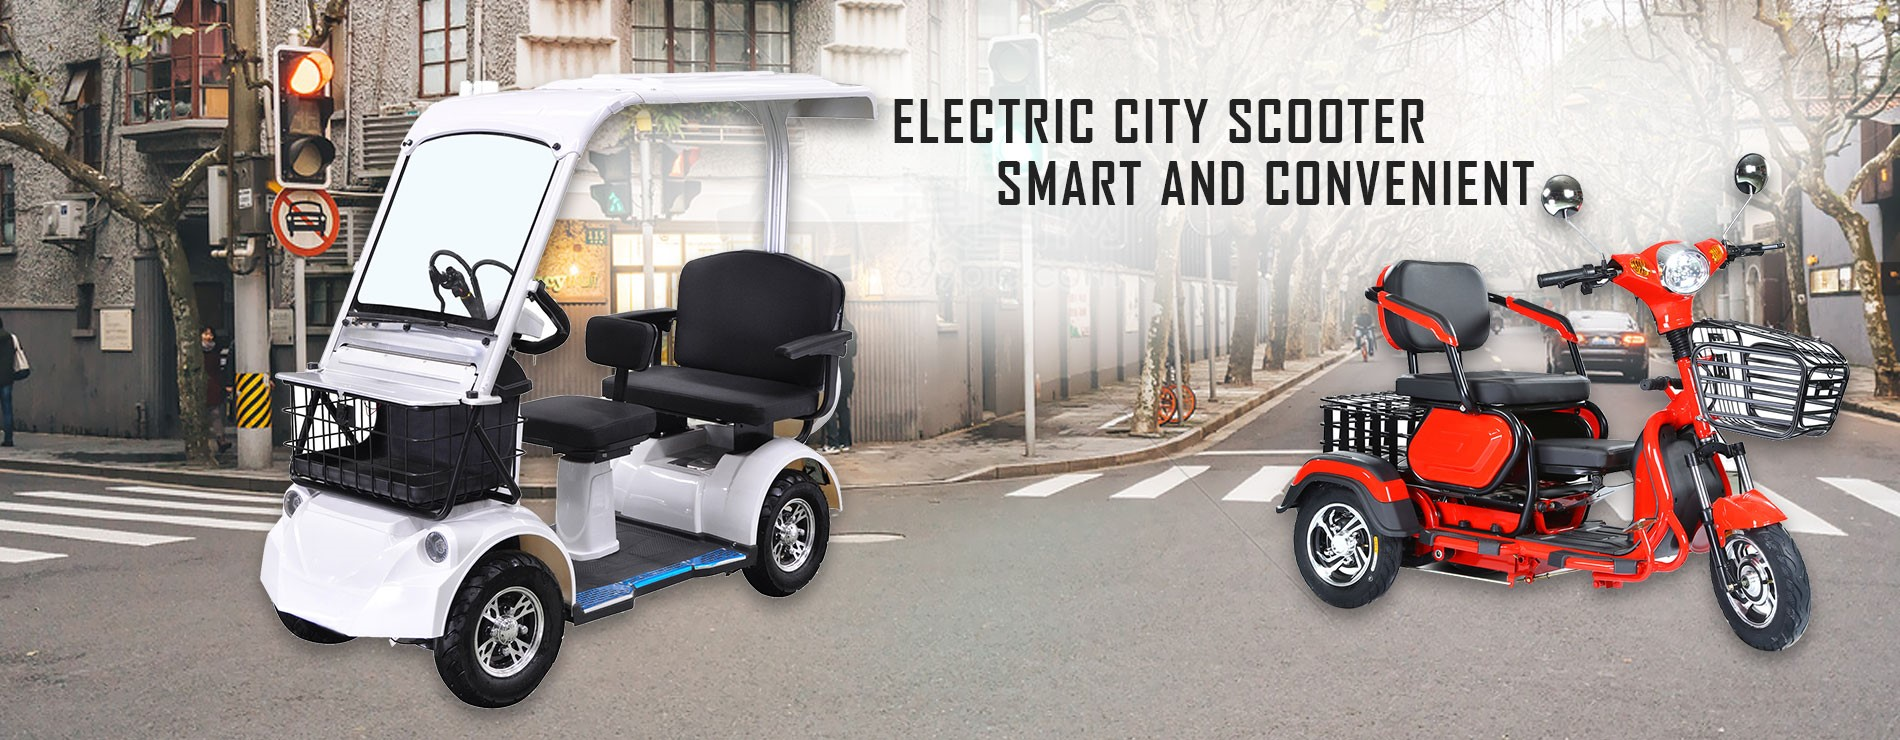 Smart Passenger Electric Scooter